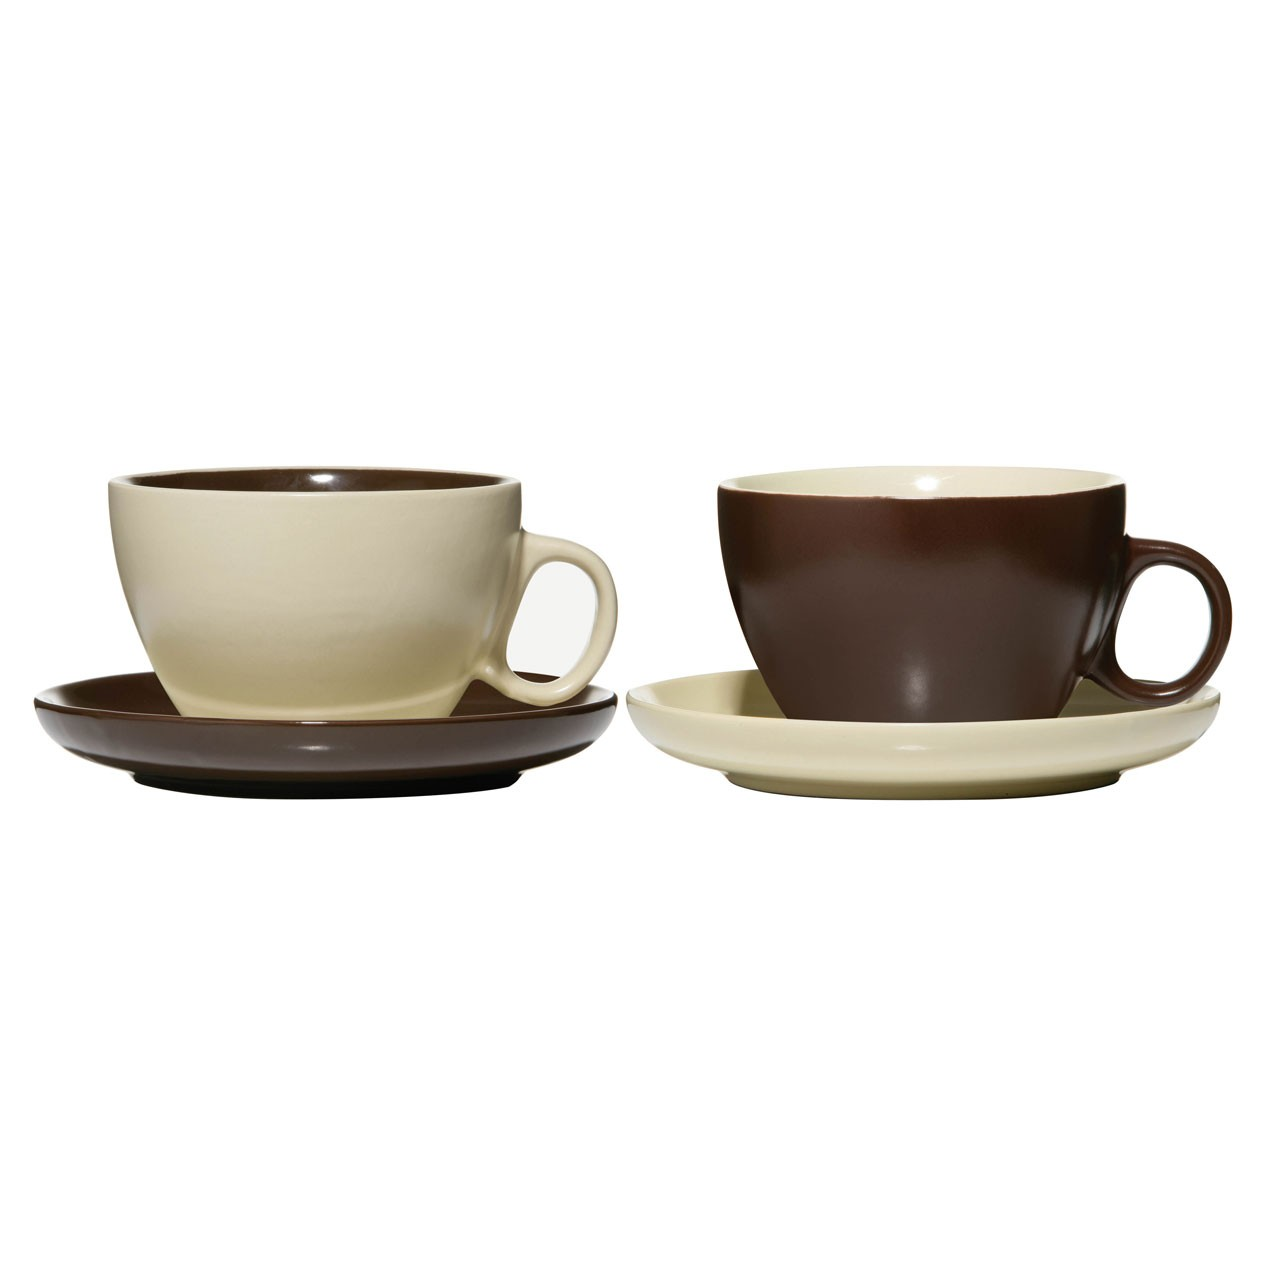 Cups and Saucer, Chocolate/Cream 2 Assorted, 14oz Stoneware